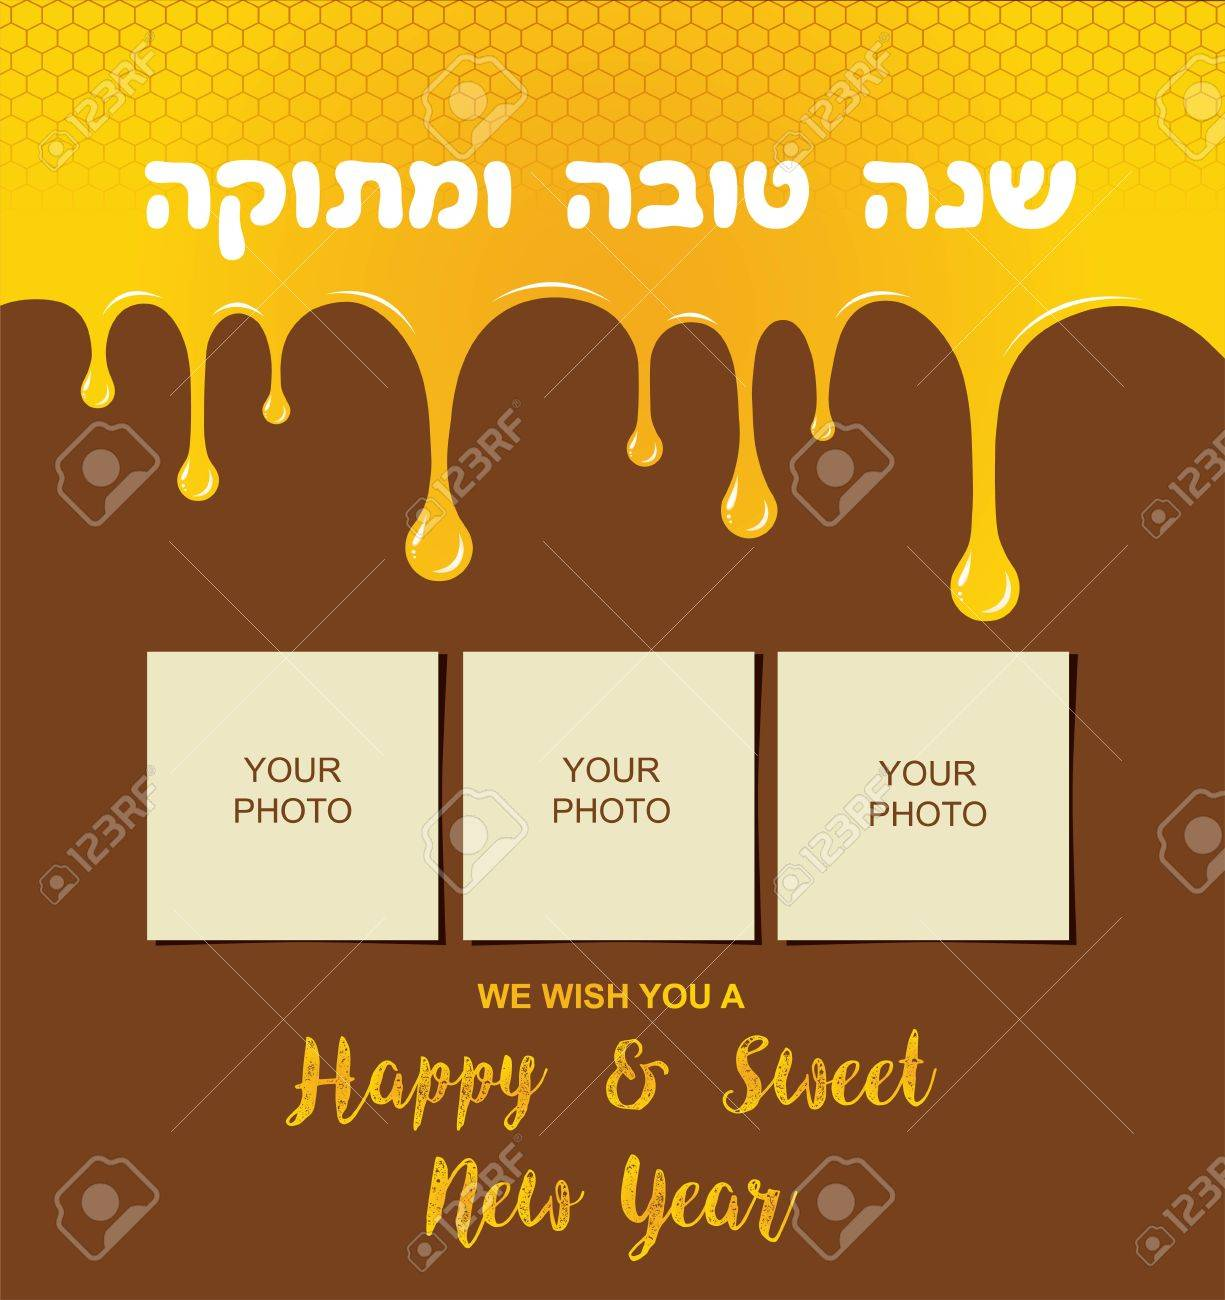 Honey drips shana tova greetings in hebrew rosh hashanah card shana tova greetings in hebrew rosh hashanah card with place for your kristyandbryce Choice Image